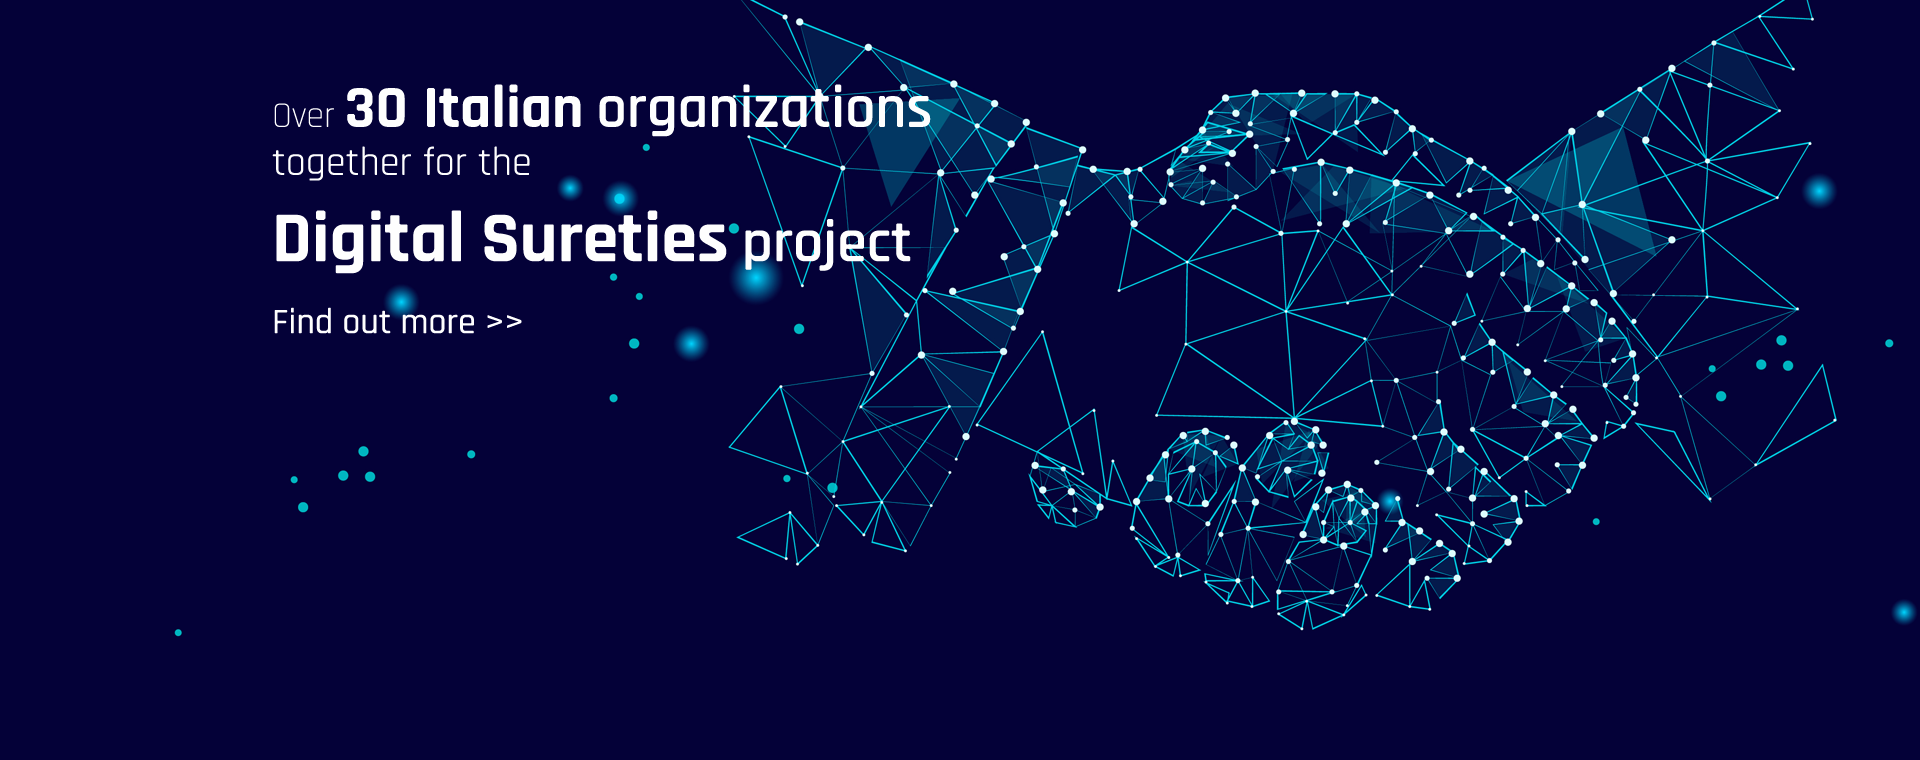 Over 30 Italian organizations the Digital Sureties project